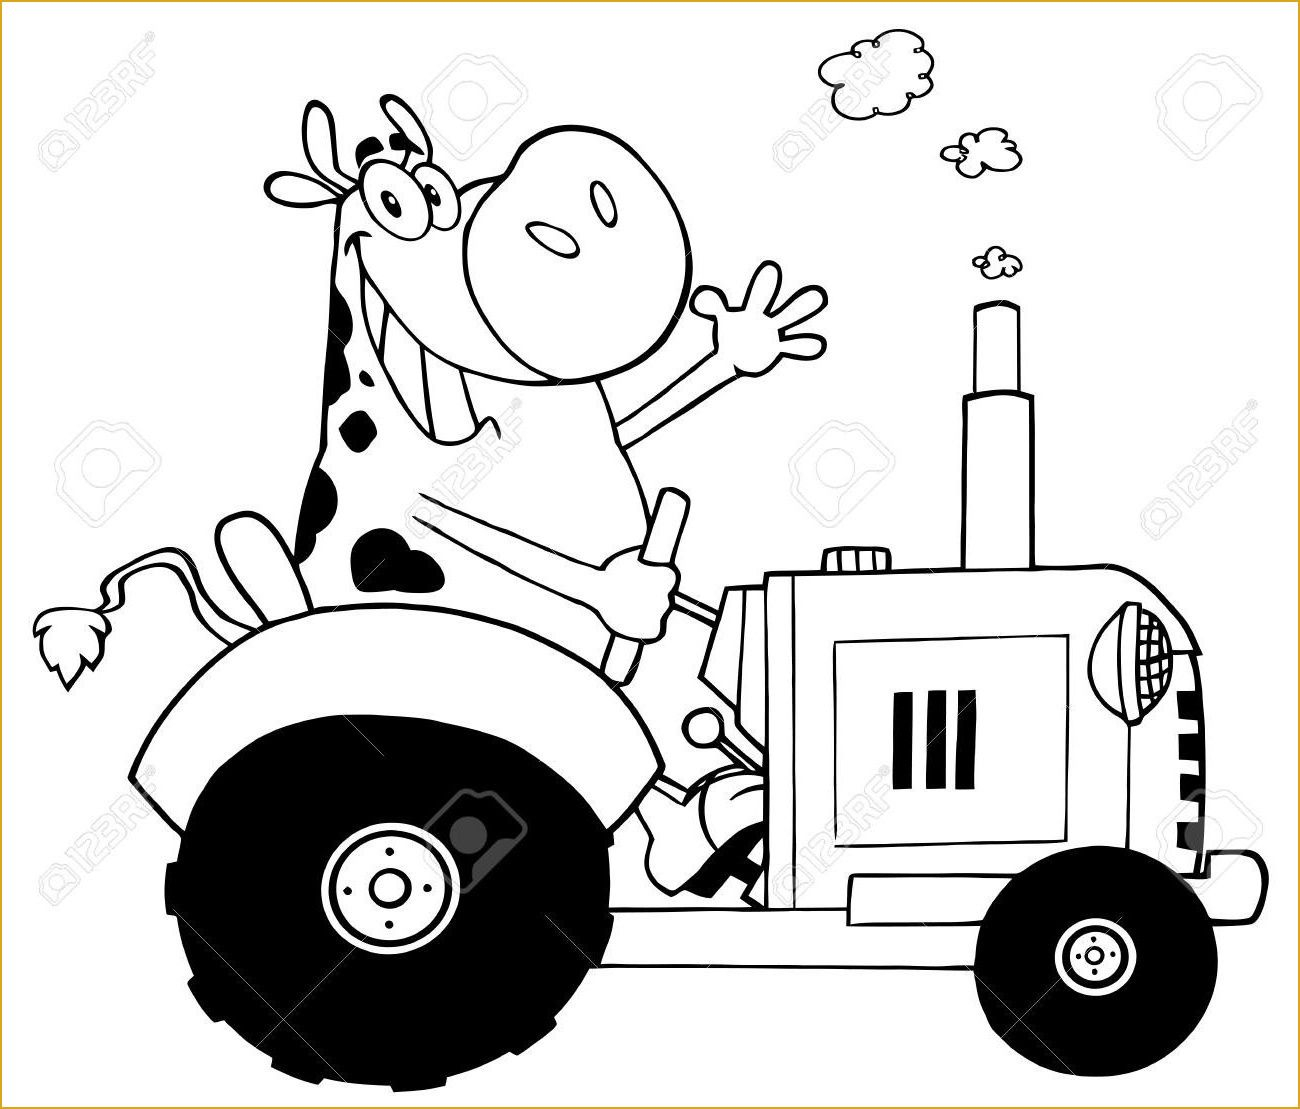 Coloriage Tracteur New Holland Facile Coloriage Tracteur New intérieur Dessin Tracteur Facile